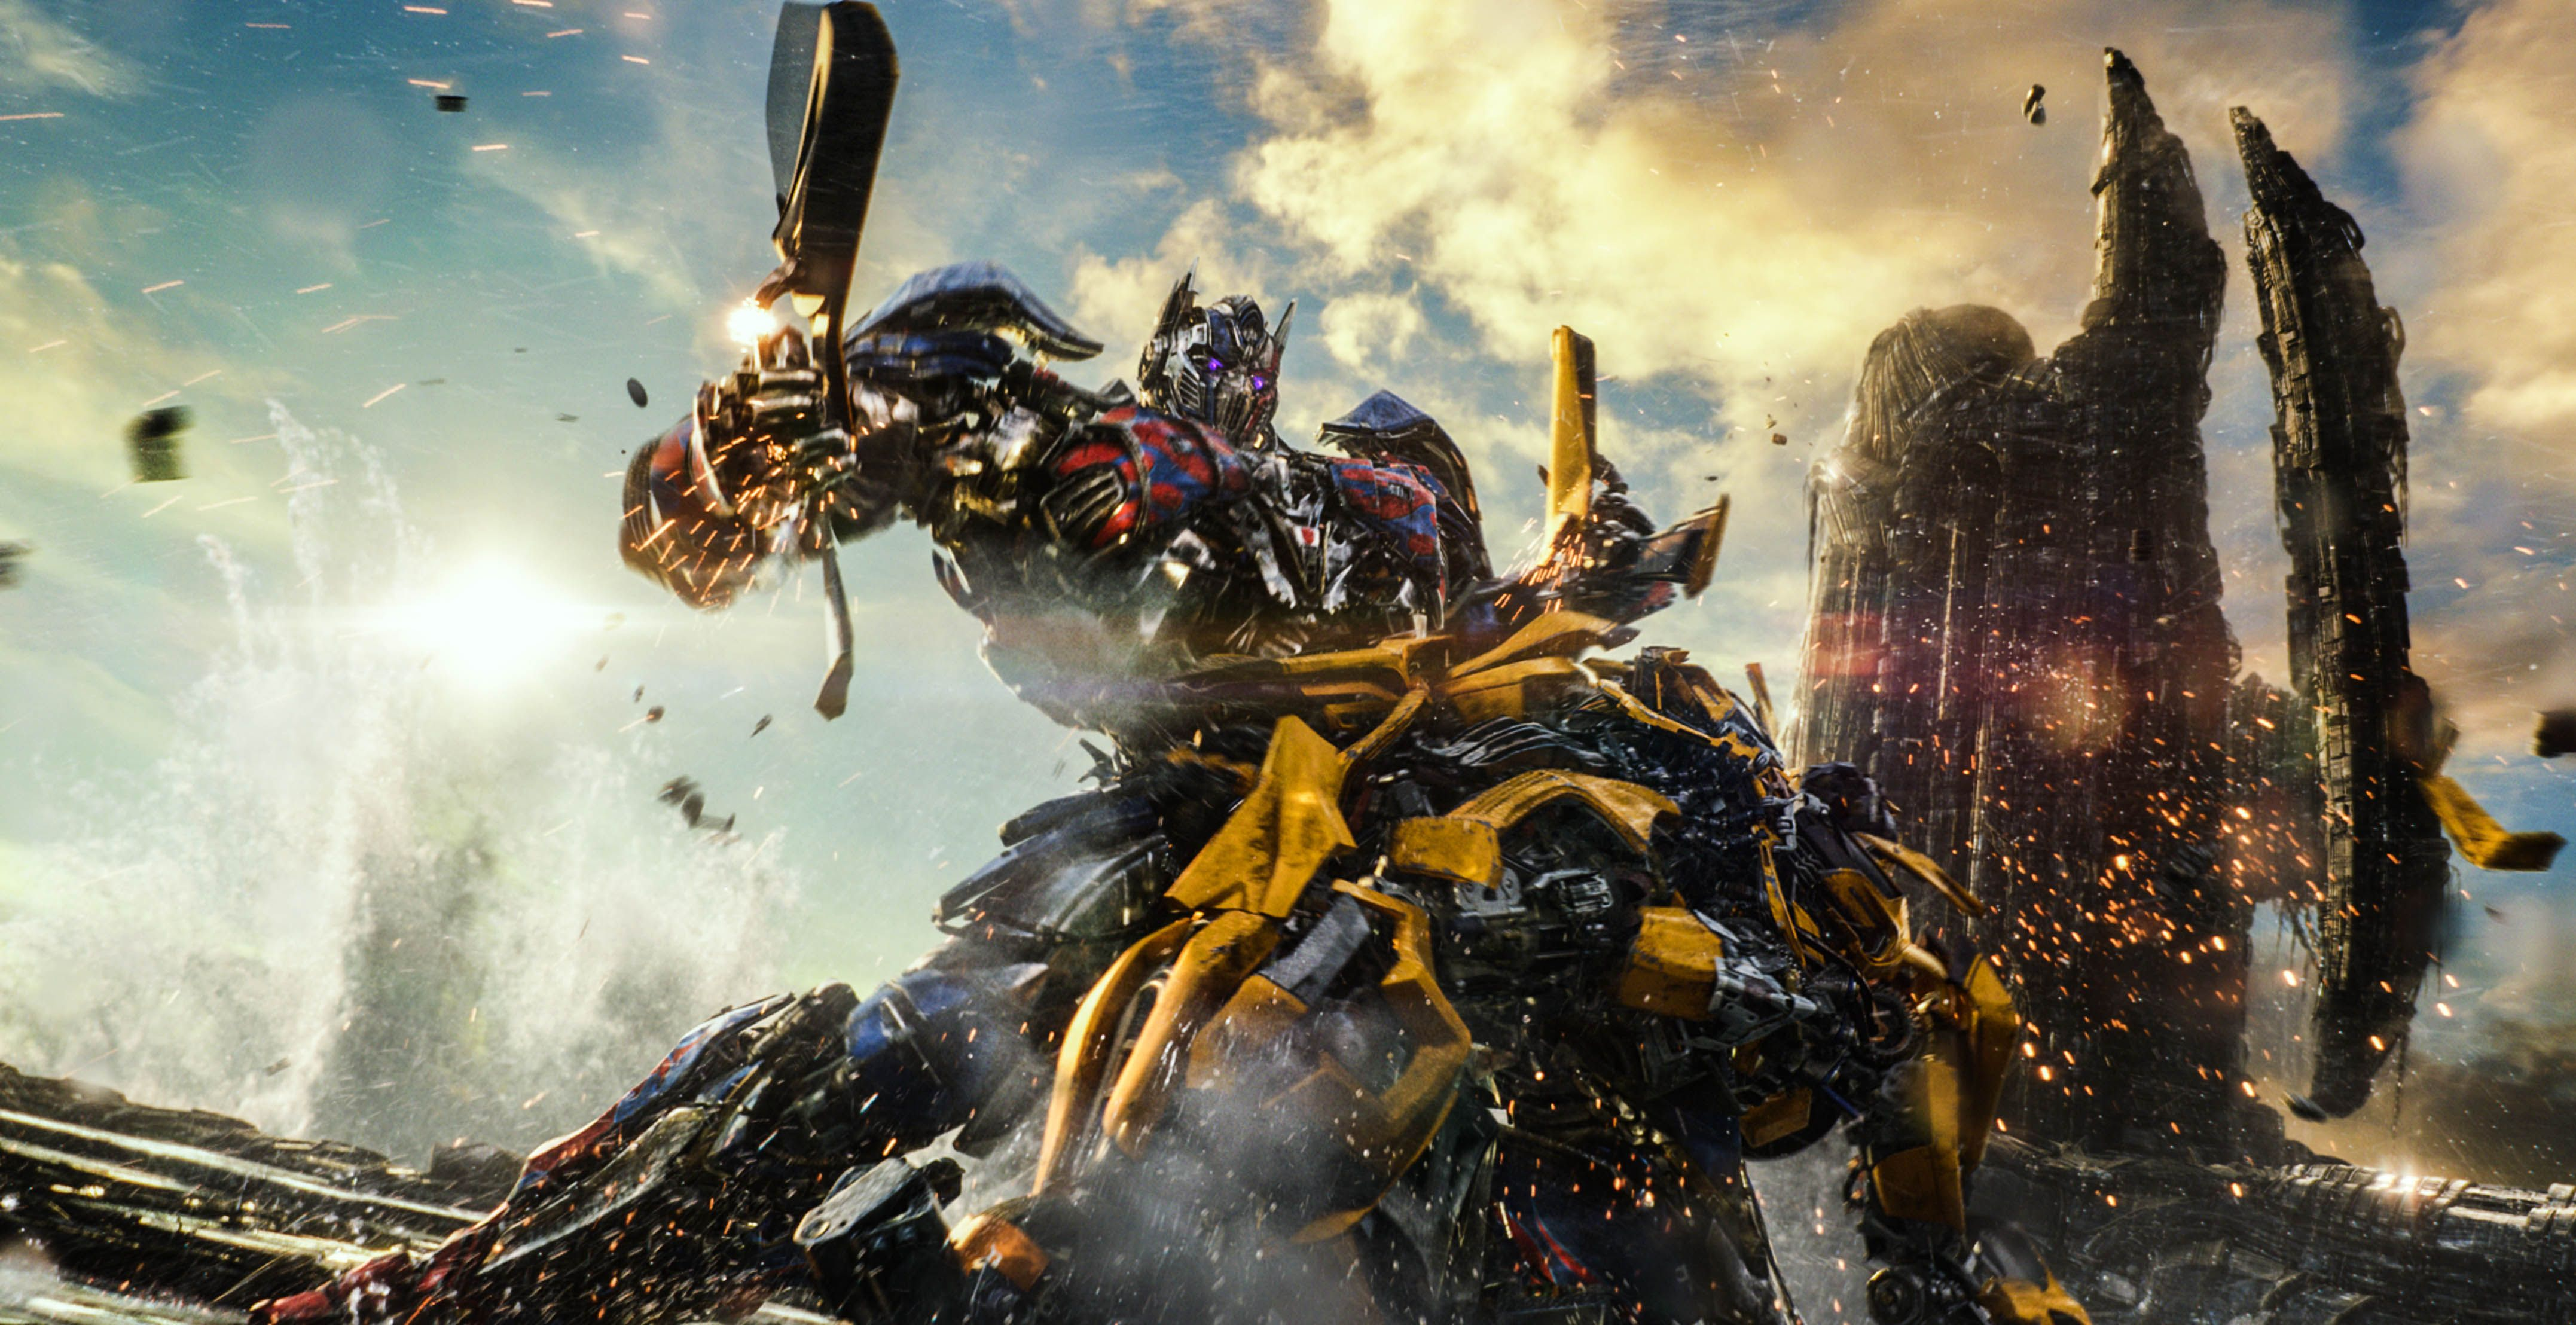 Transformers 7 Release Date Cancelled by Paramount | Collider